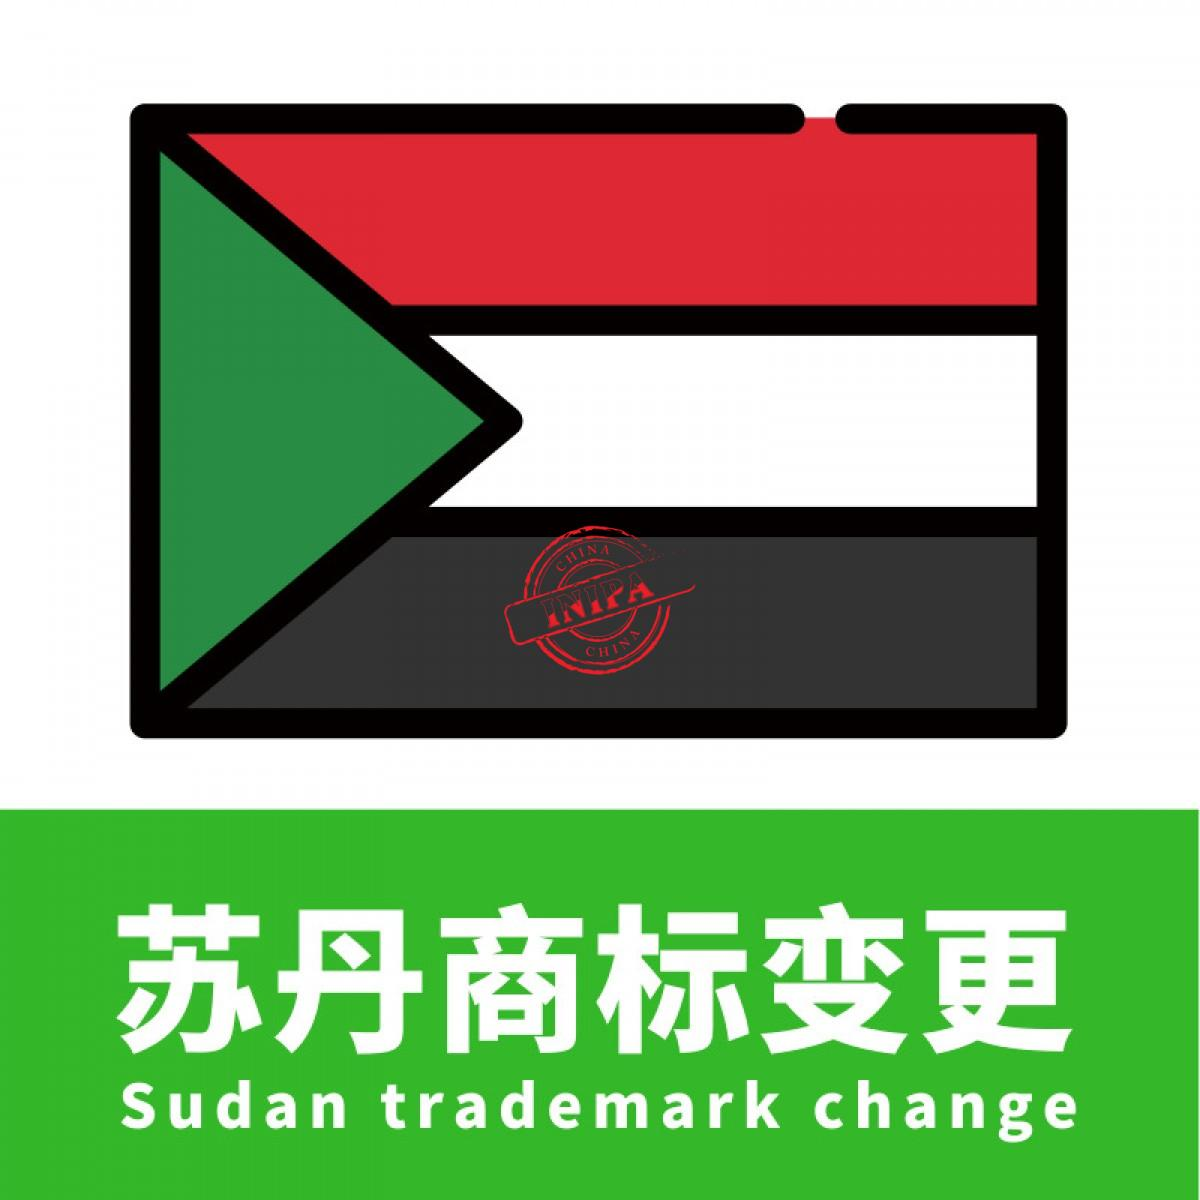 苏丹商标变更/Sudan trademark change